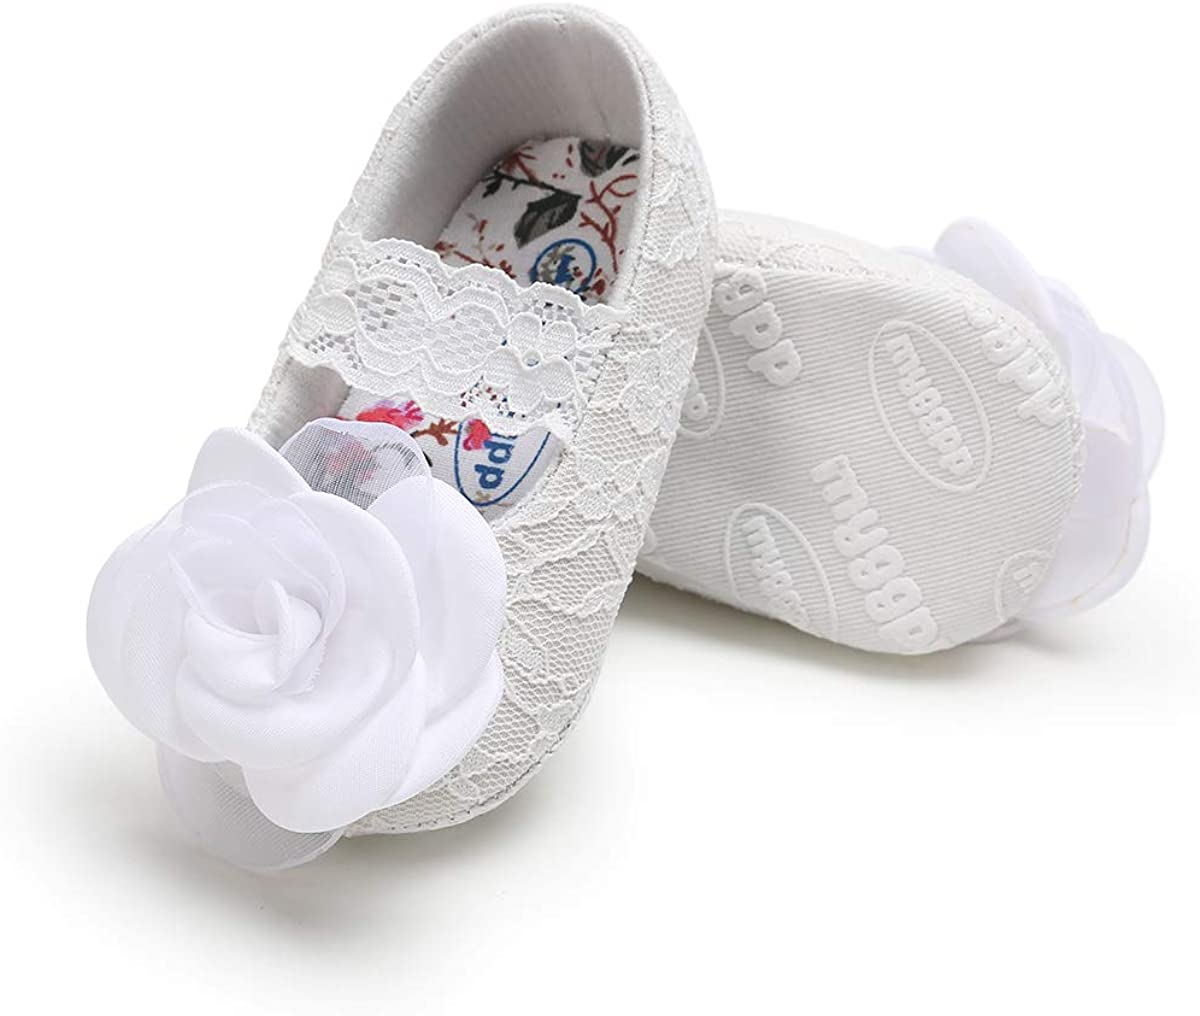 Sakuracn Baby Girls Mary Jane Flats Non-Slip Soft Soled Infant Toddler First Walkers Crib Shoes Princess Dress Shoes